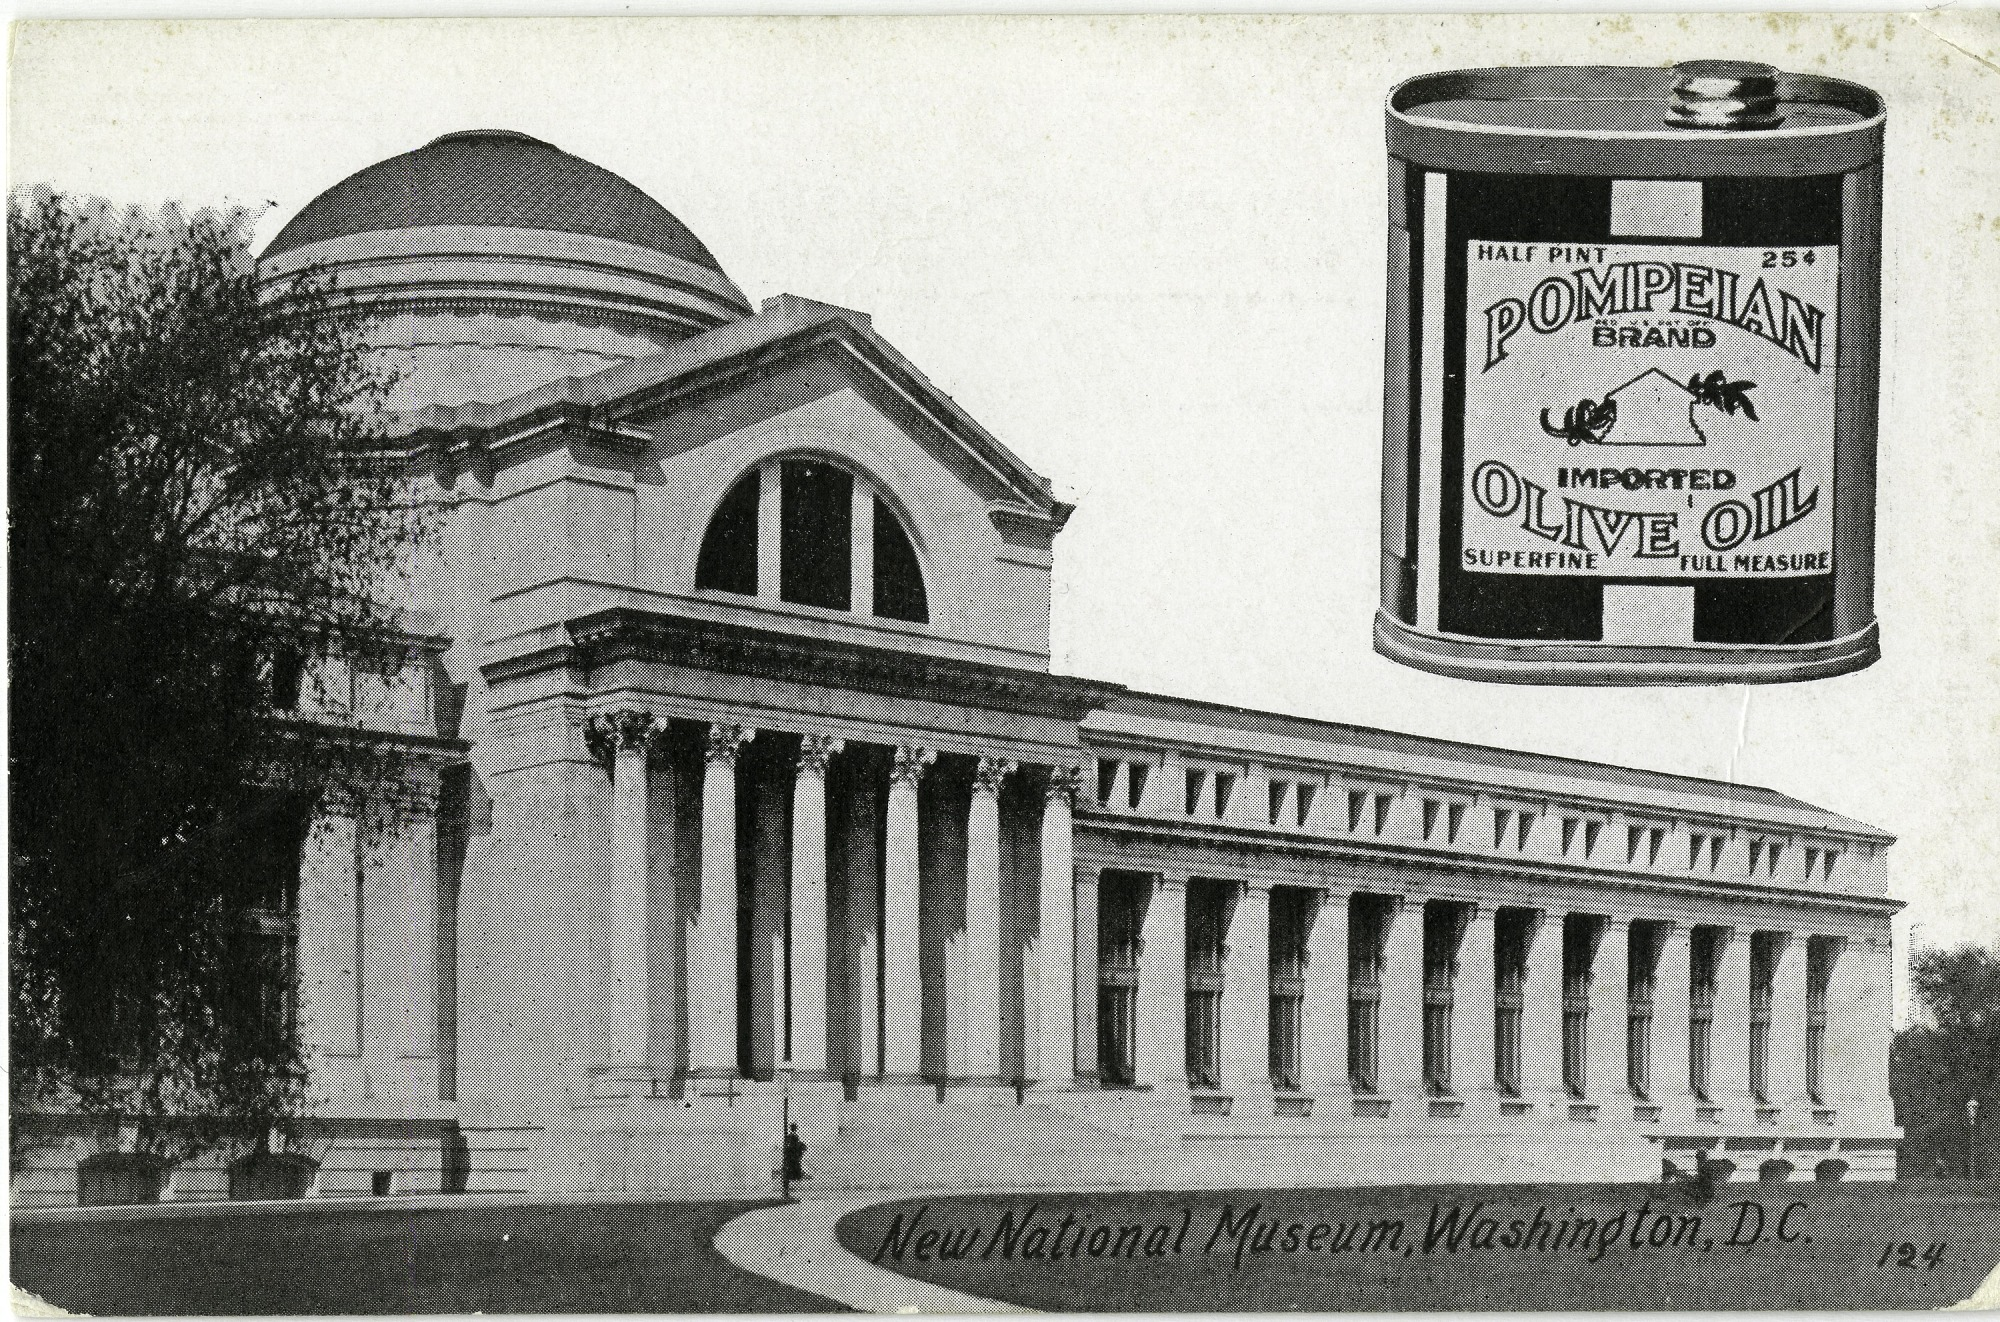 Postcard of New National Museum and Can of Pompeian Olive Oil